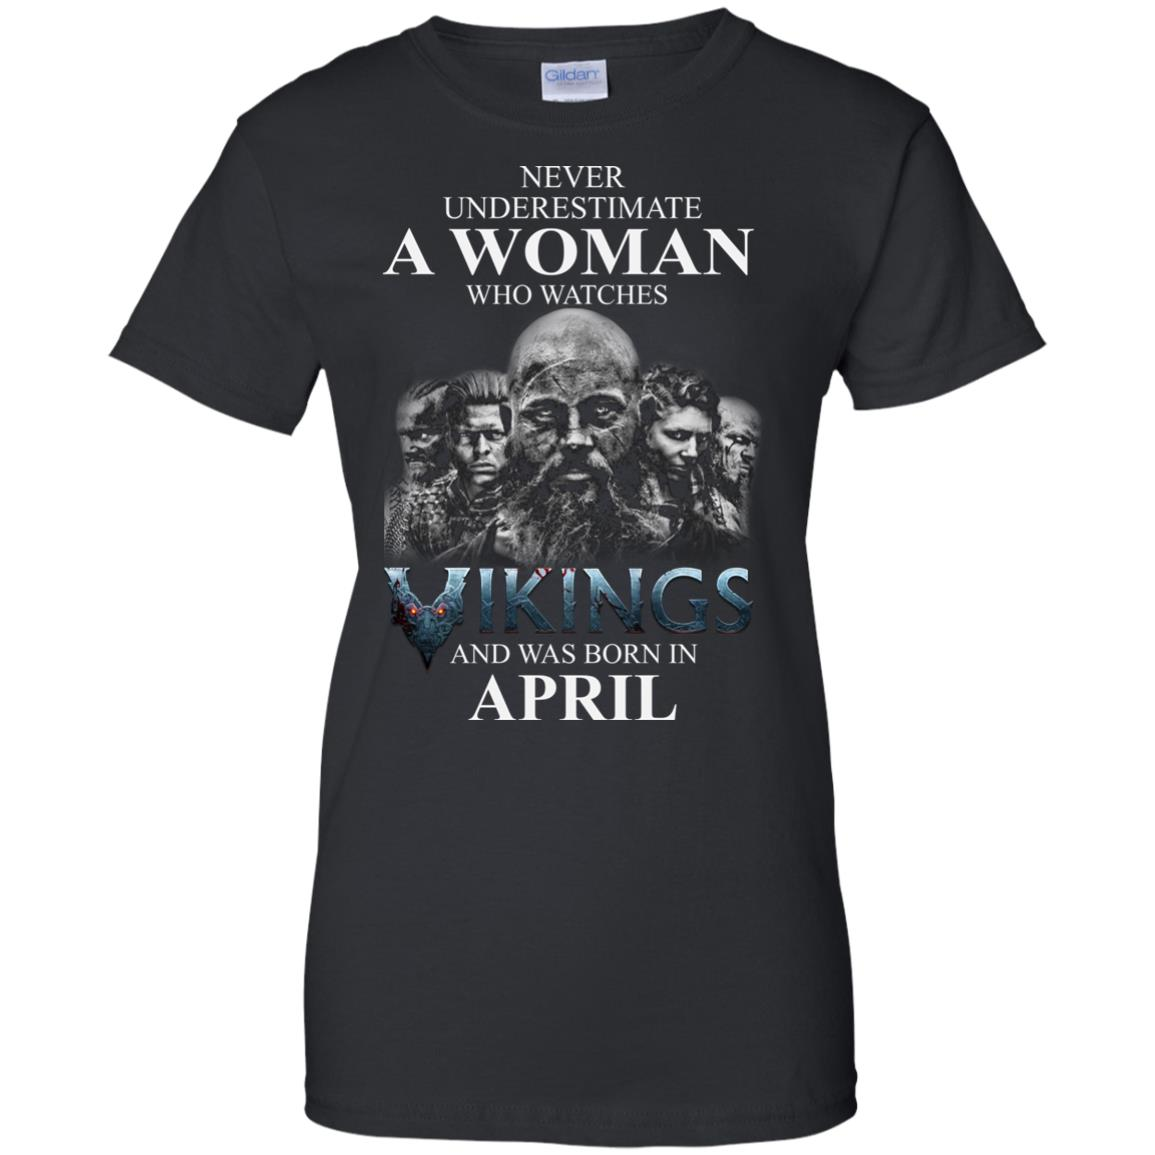 image 1325 - Never Underestimate A woman who watches Vikings and was born in April shirt